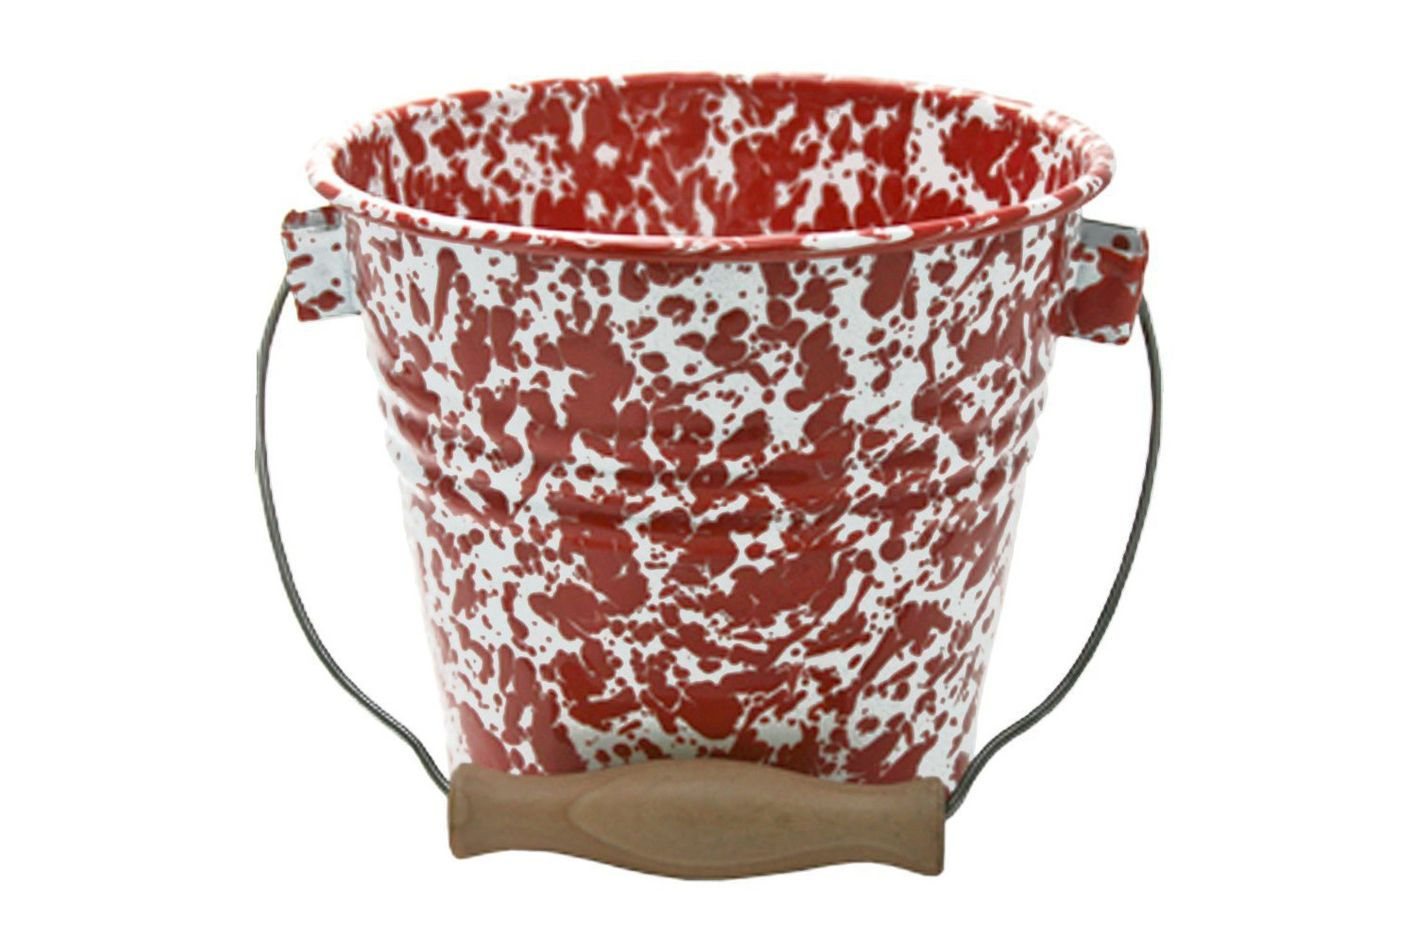 21 Splatterware Enamel Marbled Enamelware Things On Amazon